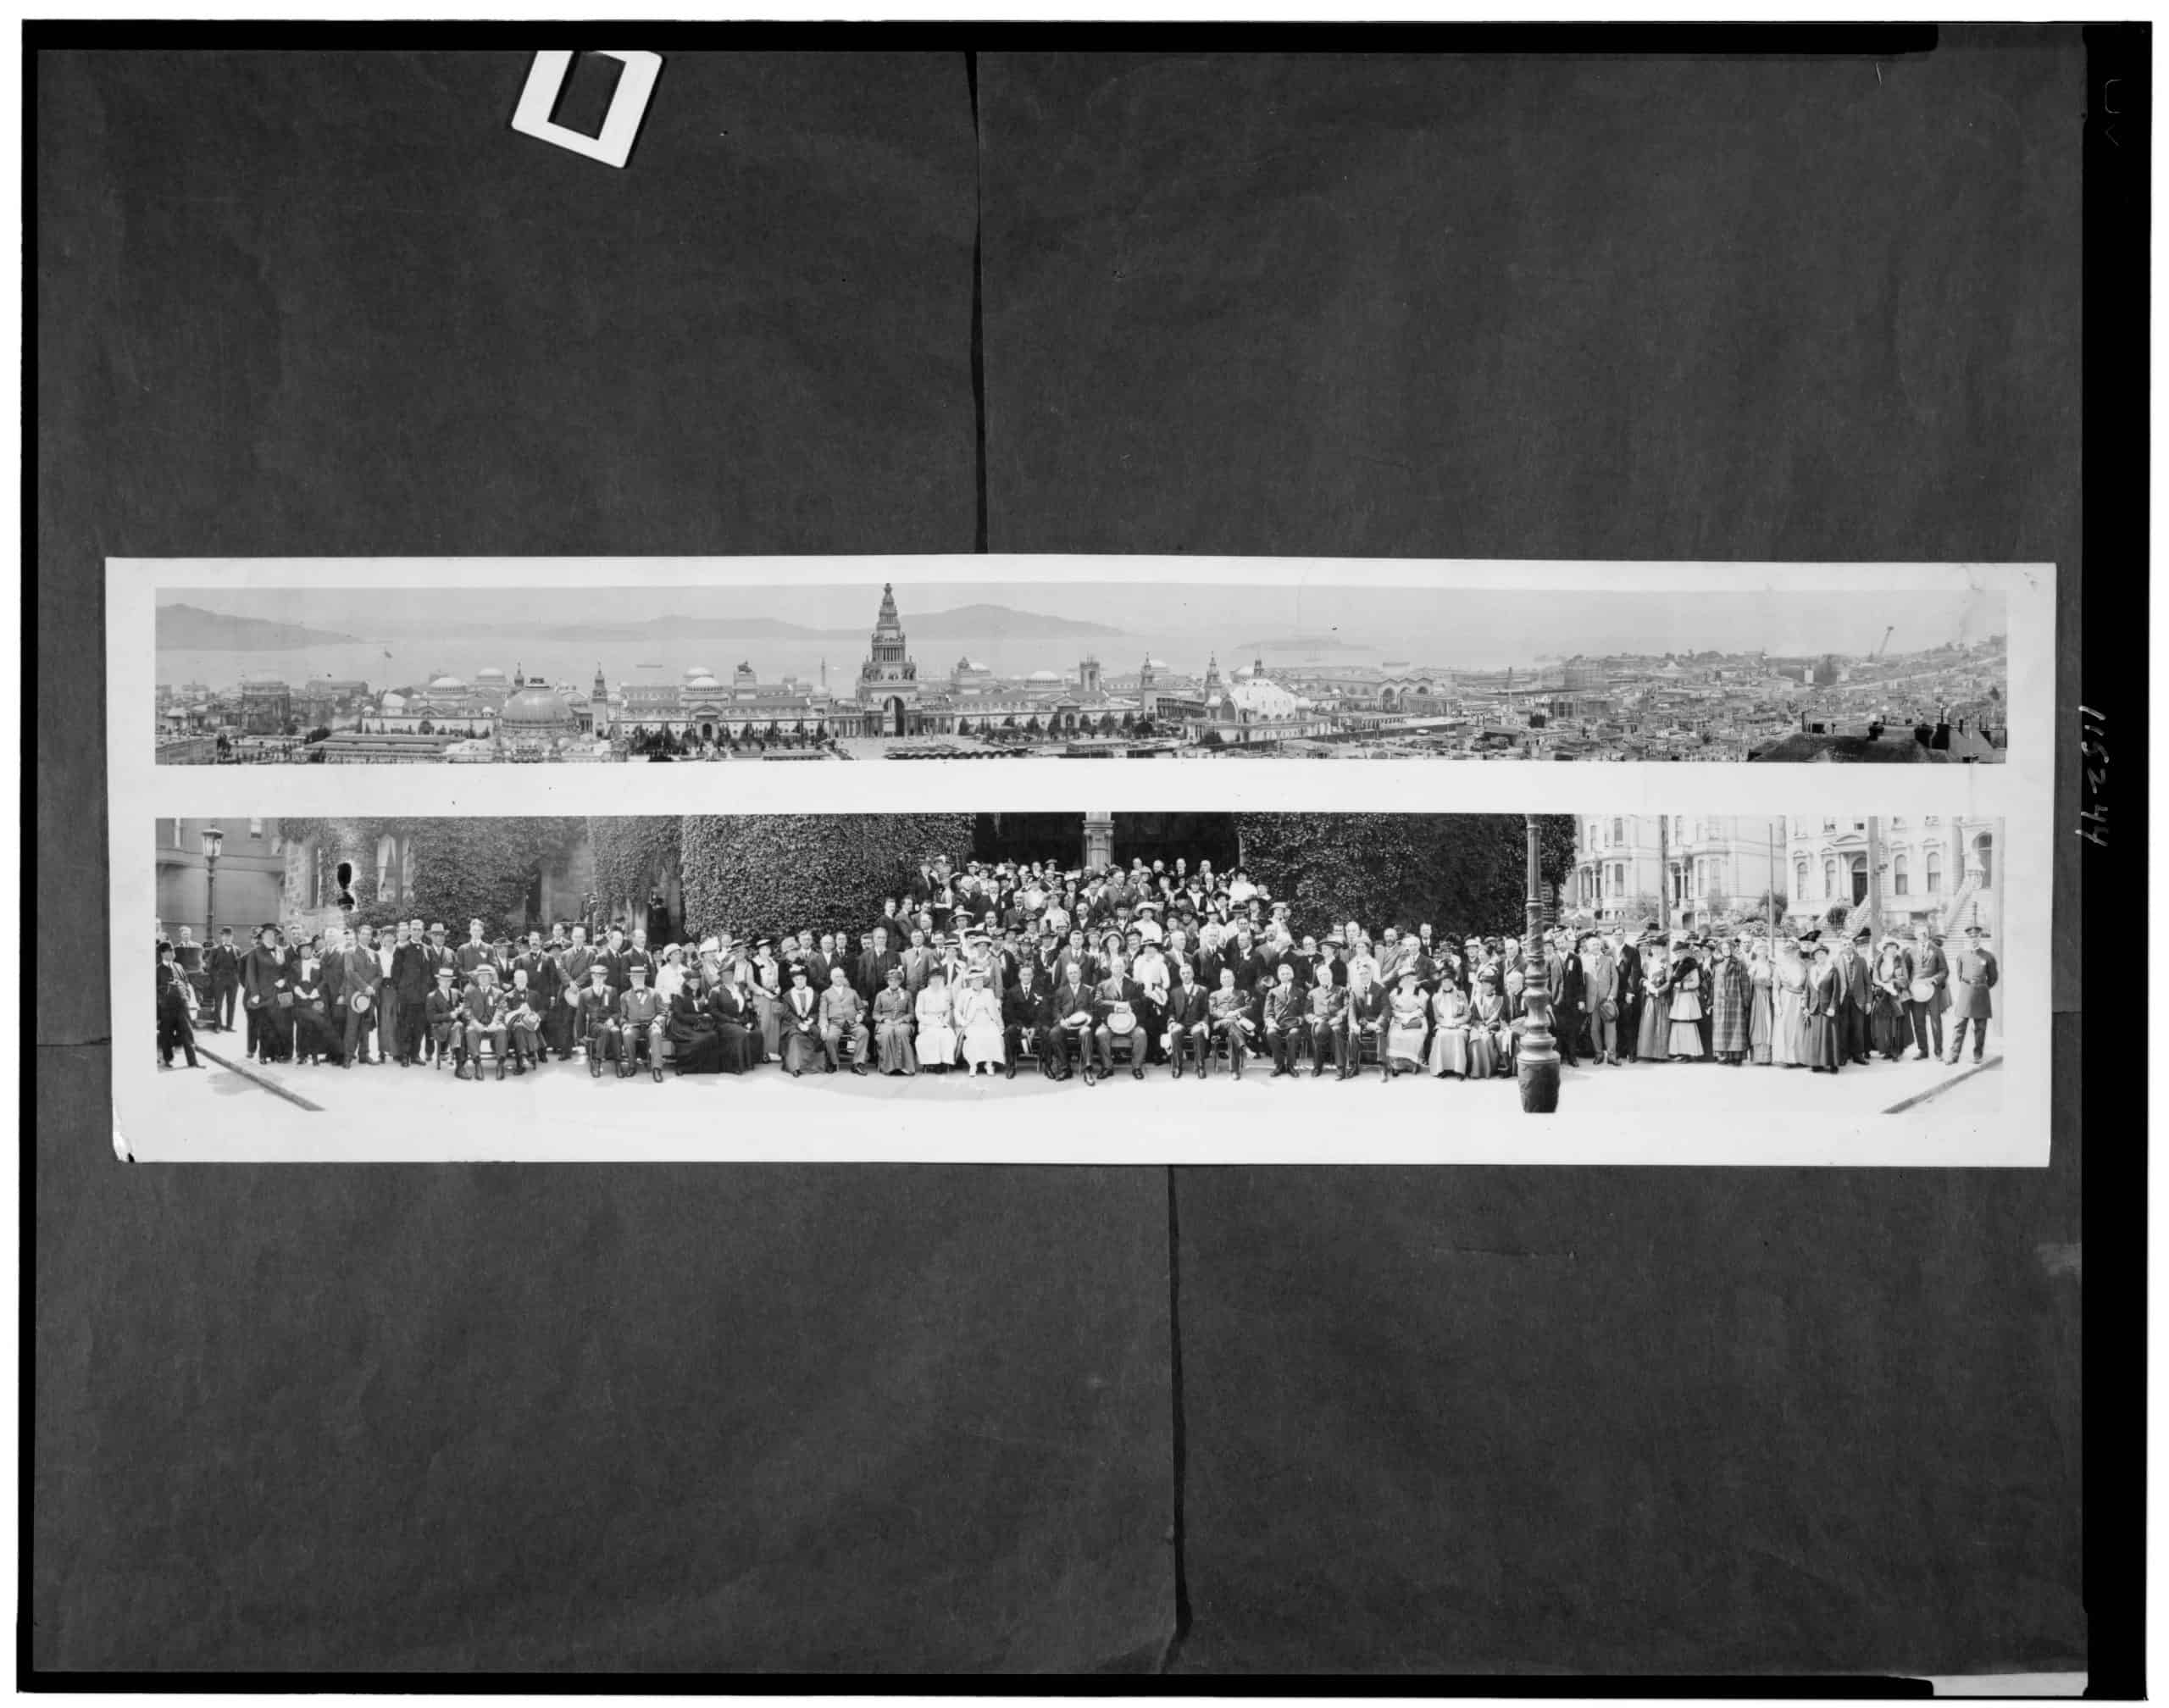 Panama-Pacific exposition, general view and group portrait, R. F. Sanford, 1915